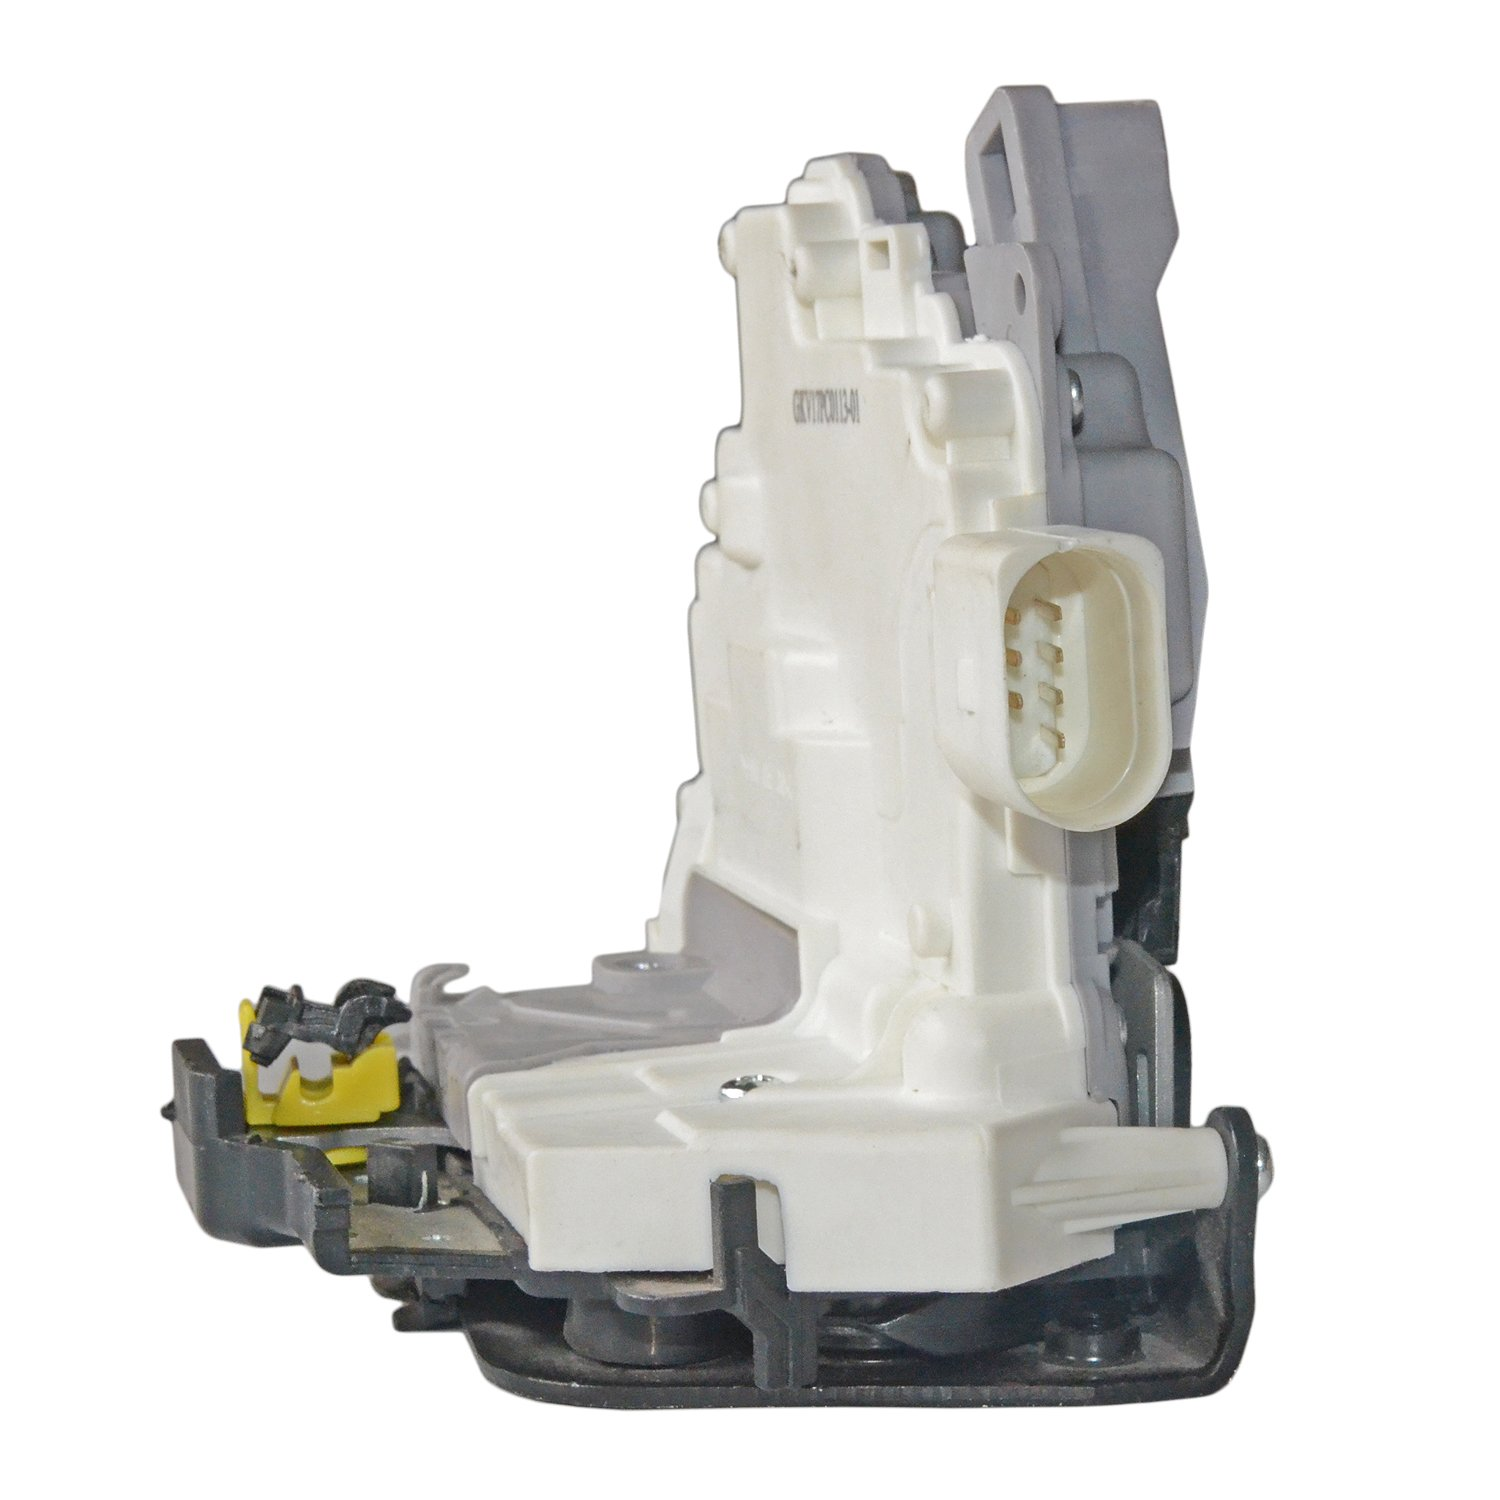 Rear Right Door Lock Actuator 4F0839016 Compatible FOR AUDI A3 S3 A4 A6 S6 A8 S8 R8 RS3 RS6 AKWH